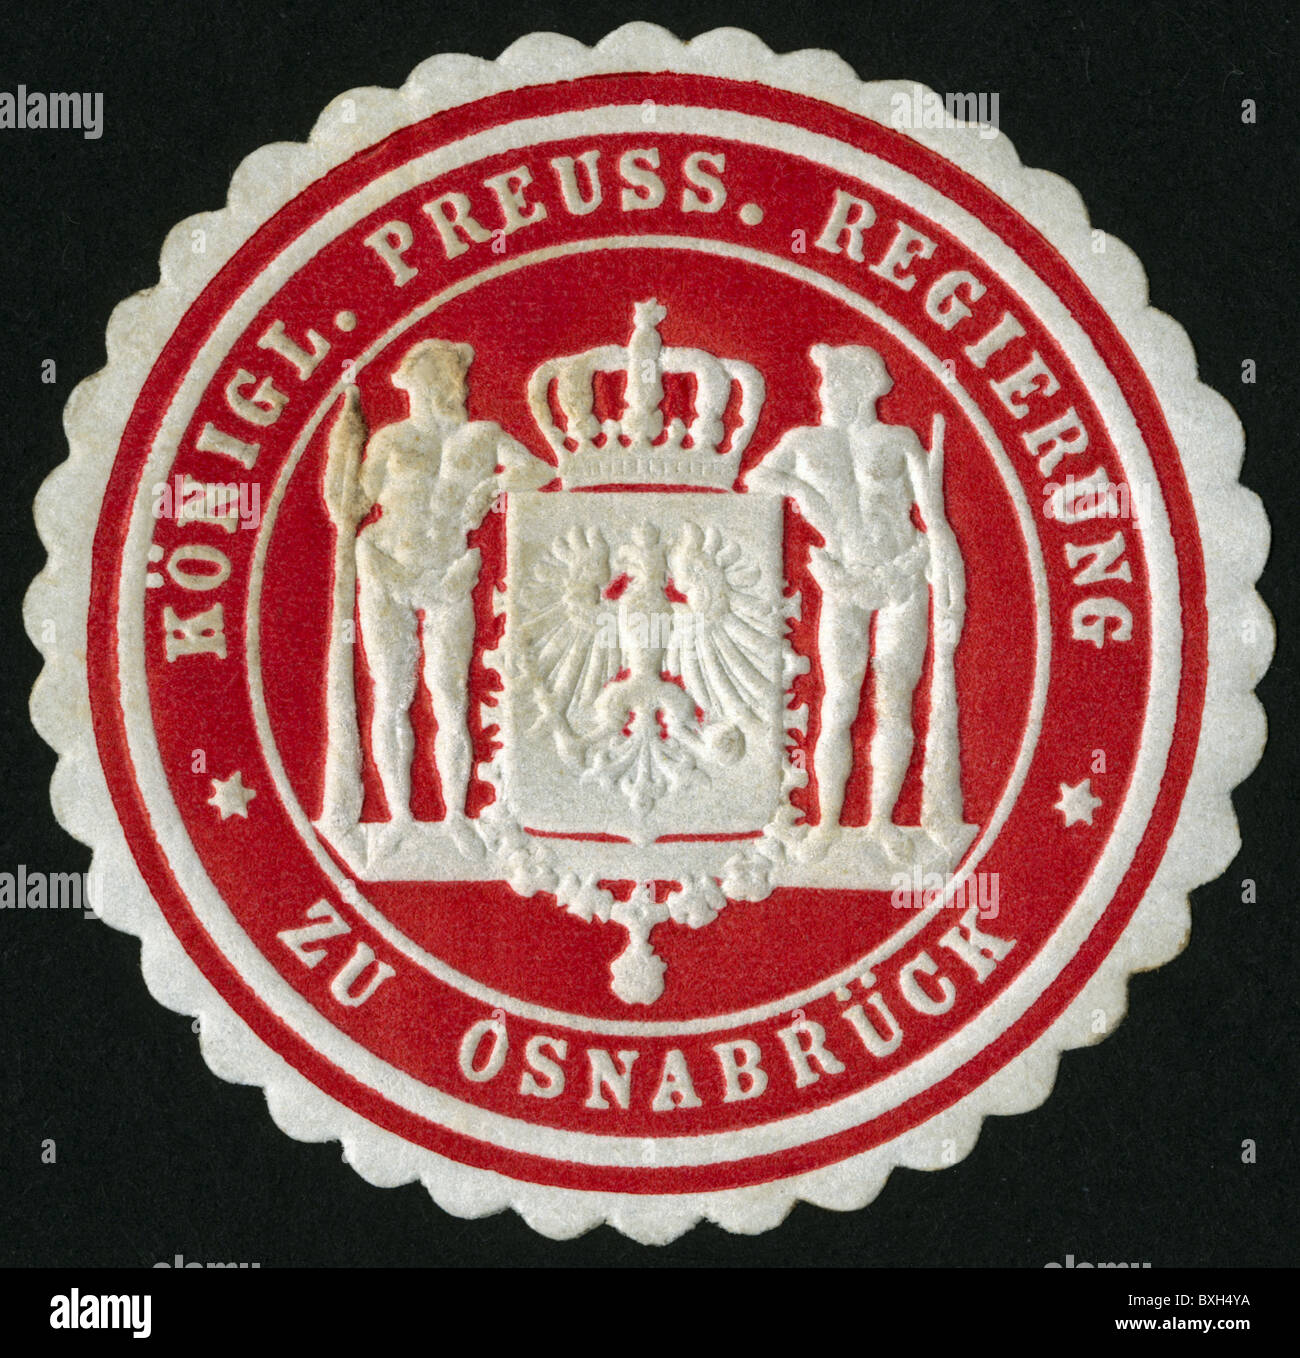 heraldry, seals, official seal of the Royal Prussian government of Osnabrueck, circa 1895, Additional-Rights-Clearences - Stock Image